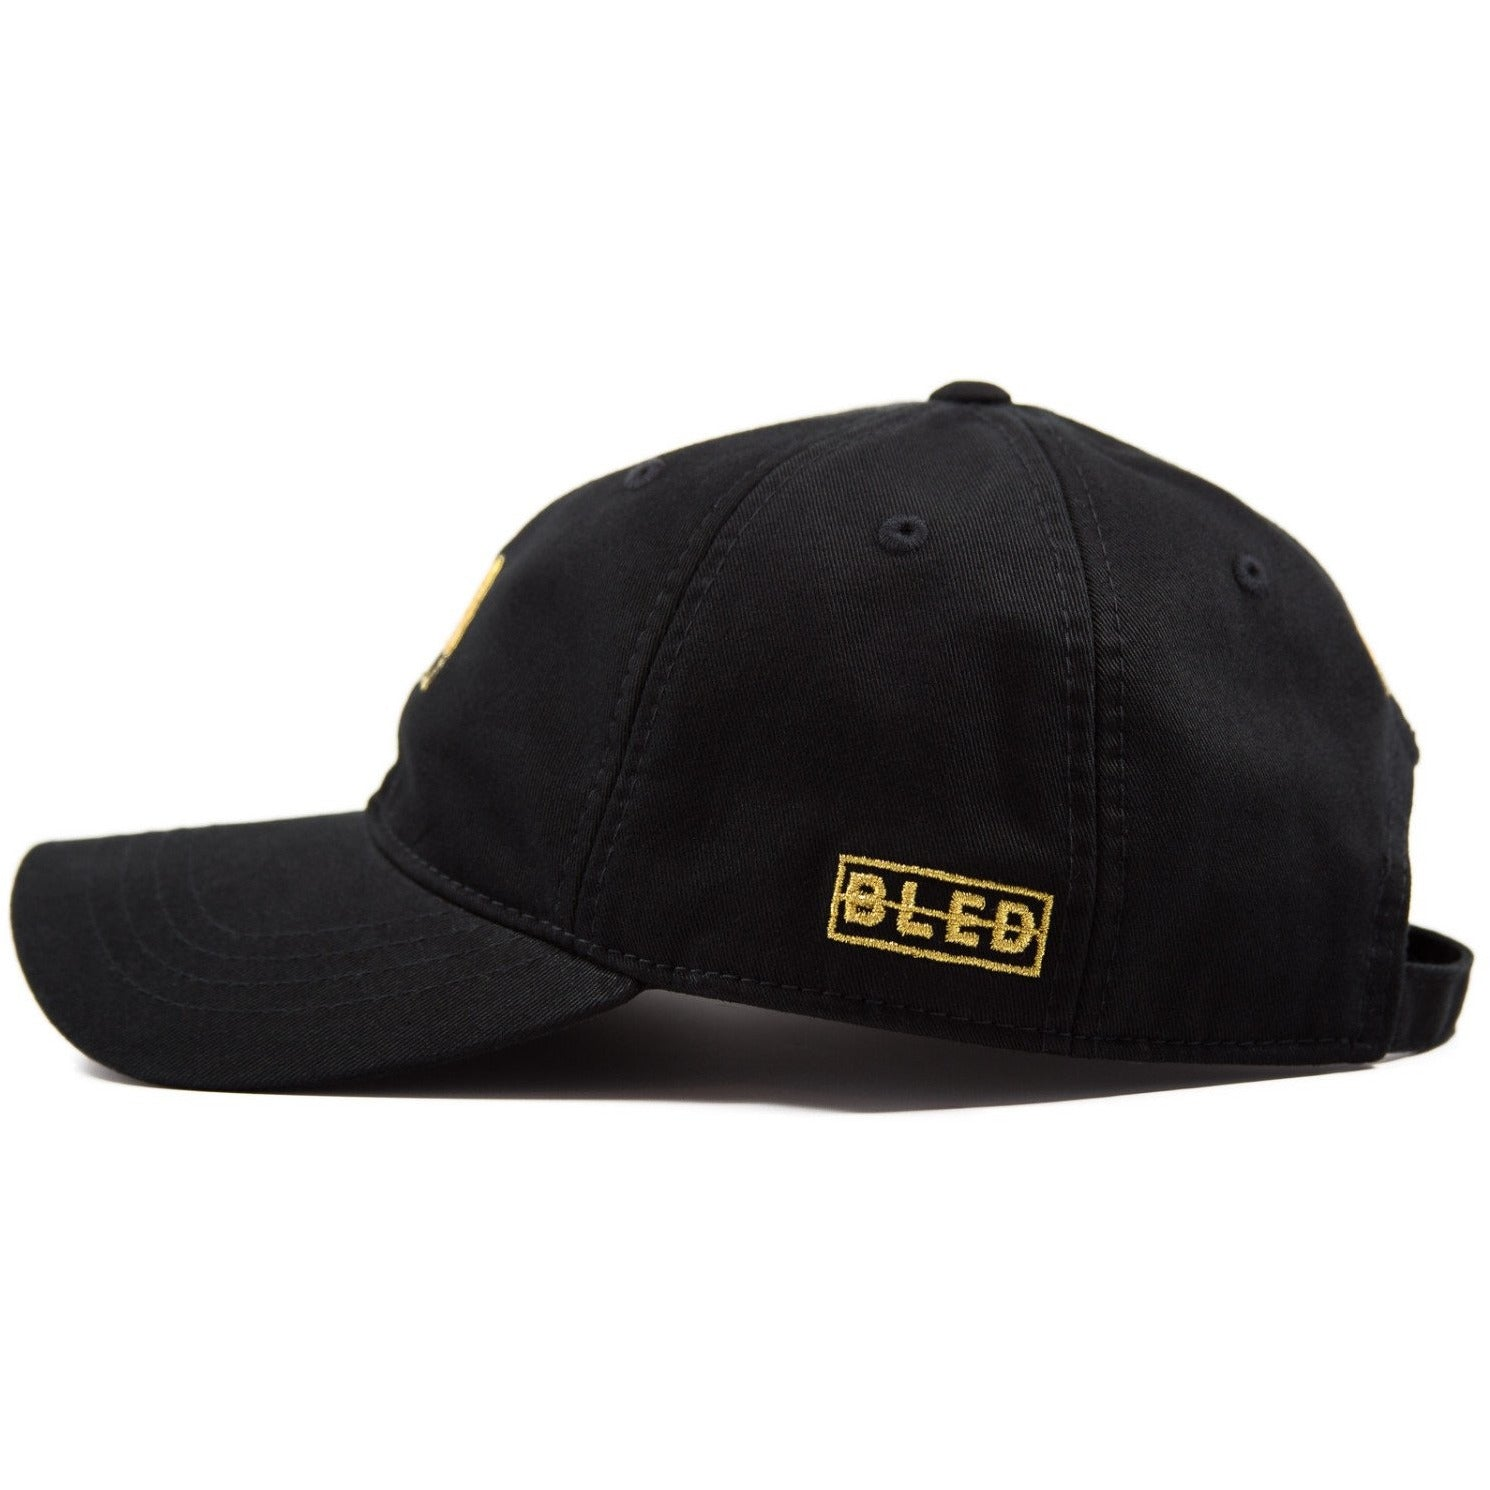 6-panel unconstructed 100% Cotton black dad hat featuring Levels design embroidery on the front and Bled logo embroidered on the back gold with adjustable strap closure.